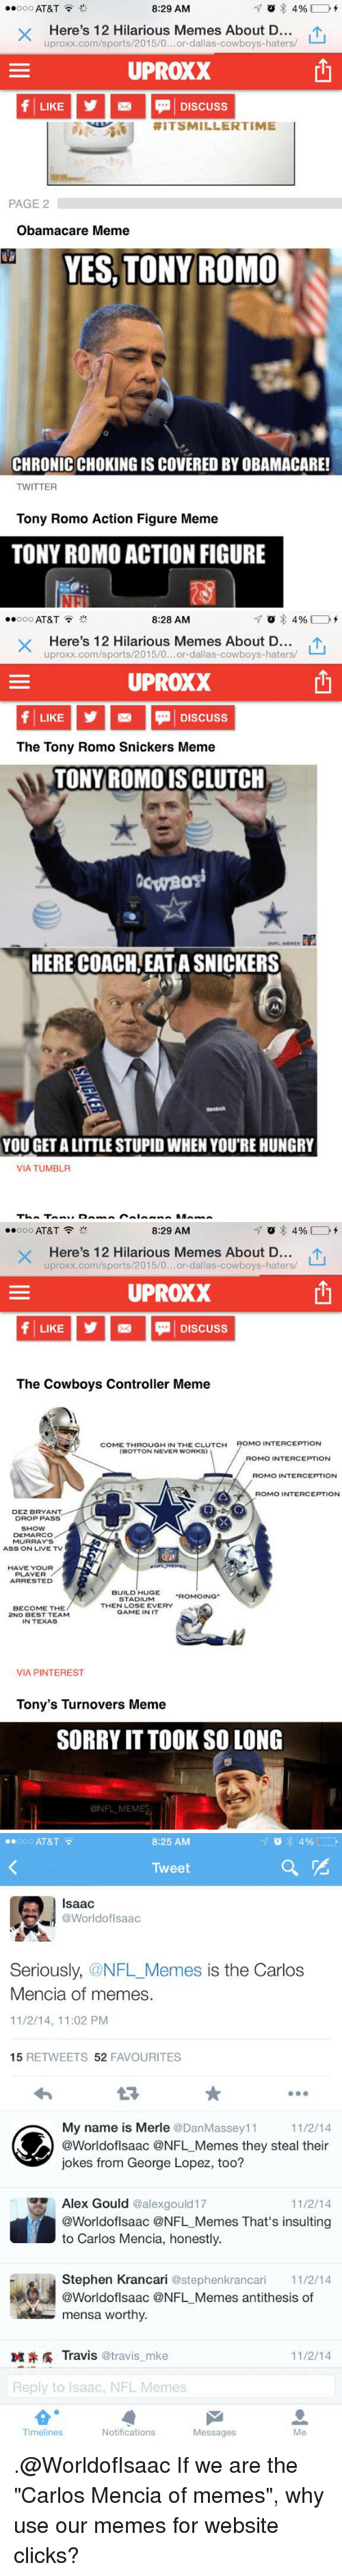 """Snickers Meme: 8:29 AM  ooo AT&T  4%  Here's 12 Hilarious Memes About D  uproxx.com/sports/2015/0...or-dallas-cowboys-haters/  UPROXX  LIKE Discuss  RIT SMILLER TIME  PAGE 2  Obamacare Meme  YES, TONY ROMO  CHRONICCHOKING ISCOVERED BY OBAMACARE!  TWITTER  Tony Romo Action Figure Meme  TONY ROMO ACTION FIGURE   8:28 AM  ooo AT&T  4%  X Here's 12 Hilarious Memes About D  LU  uproxx.com/sports/2015/0...or dallas-cowboys-haters/  UPROXX  f LIKE  Discuss  The Tony Romo Snickers Meme  TONY ROMO ISCLUTCH  OWBOS  HERE COACHAEATASNICKERS  YOU GETALITTLE STUPIDWHEN YOU'RE HUNGRY  VIA TUMBLR   8:29 AM  ..ooo AT&T  4%  Here's 12 Hilarious Memes About D  LU  uproxx.com/sports/2015/0...or-dallas-cowboys-haters/  UPROXX  The Cowboys controller  Meme  COME THROUGH IN THE CLUTCH  ROMO INTERCEPTION  (BOTTON NEVER WORKS)  ROMO INTERCEPTION  ROMO INTERCEPTION  ROMO INTERCEPTION  DEZ BRYANT  DROP PASS  SHOW  DEMARCO  MURRAY'S  ASS ON LIVE TV  HAVE YOUR  PLAYER  ARRESTED  BUILD HUGE  STADIUM  """"ROMOING  THEN LOSE EVERY  BECOME THE  GAME IN IT  2ND BEST TEAM  IN TEXAS  VIA PINTEREST  Tony's Turnovers Meme  SORRY ITTOOK SO LONG  ONFLMEMES   ooo AT&T  8:25 AM  Tweet  Isaac  @Worldof Isaac  Seriously  @NFL Memes is the Carlos  Mencia of memes.  11/2/14, 11:02 PM  15  RETWEETS 52  FAVOURITES  My name is Merle  @Dan Massey 11  11/2/14  @WorldofIsaac @NFL Memes they steal their  jokes from George Lopez, too?  Alex Gould  @alexgould 17  11/2/14  @WorldofIsaac ONFL Memes That's insulting  to Carlos Mencia, honestly.  Stephen Krancari  @stephenkrancari 11/2/14  @Worldof Isaac @NFL Memes antithesis of  mensa worthy.  M Travis @travis mke  11/2/14  Reply to Isaac, NFL Memes  Notifications  Timelines  Messages  Me .@WorldofIsaac If we are the """"Carlos Mencia of memes"""", why use our memes for website clicks?"""